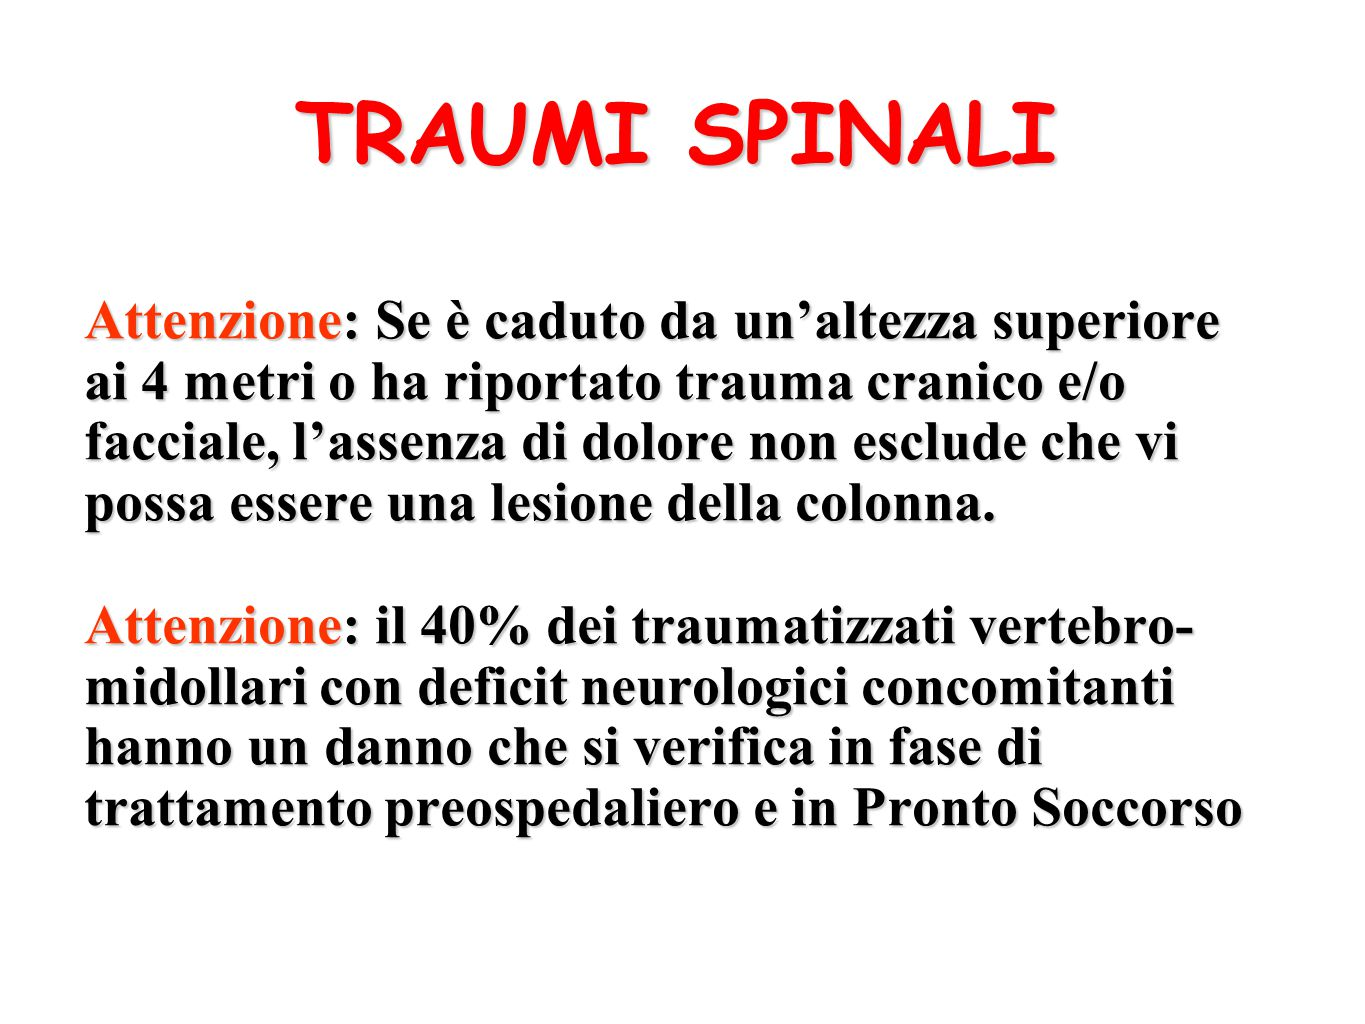 TRAUMI SPINALI